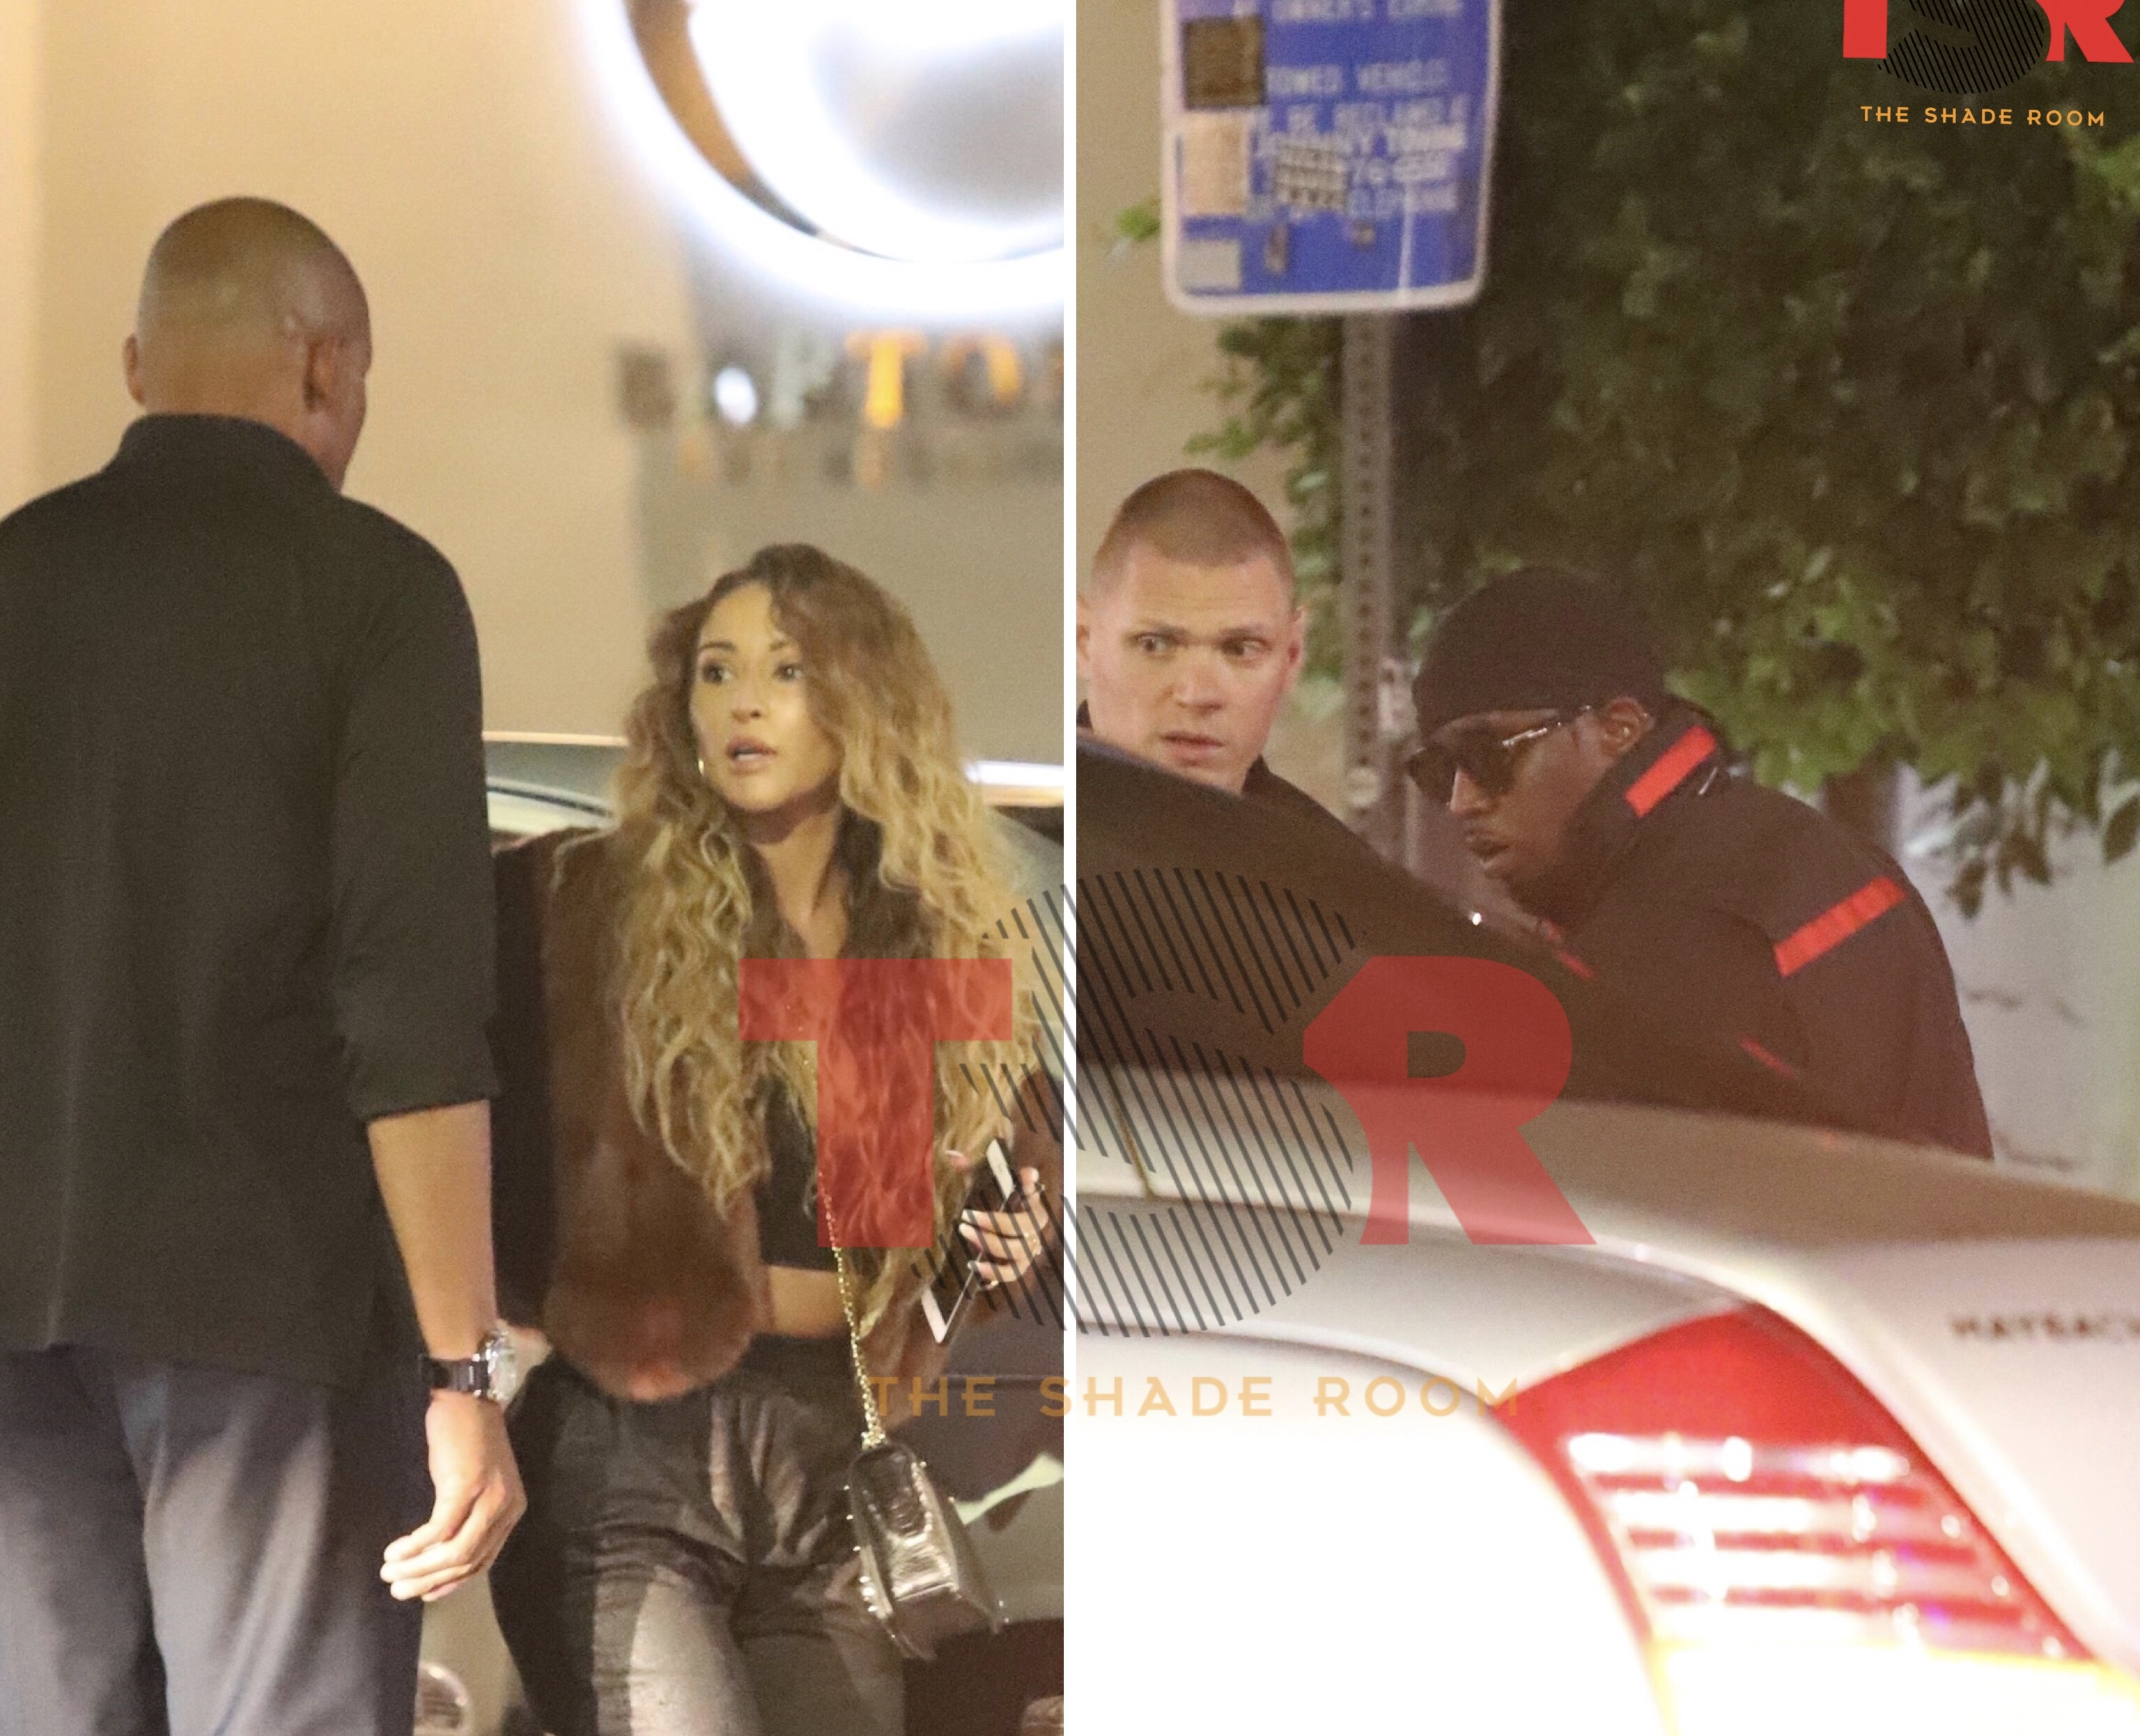 Diddy spotted out with mystery woman